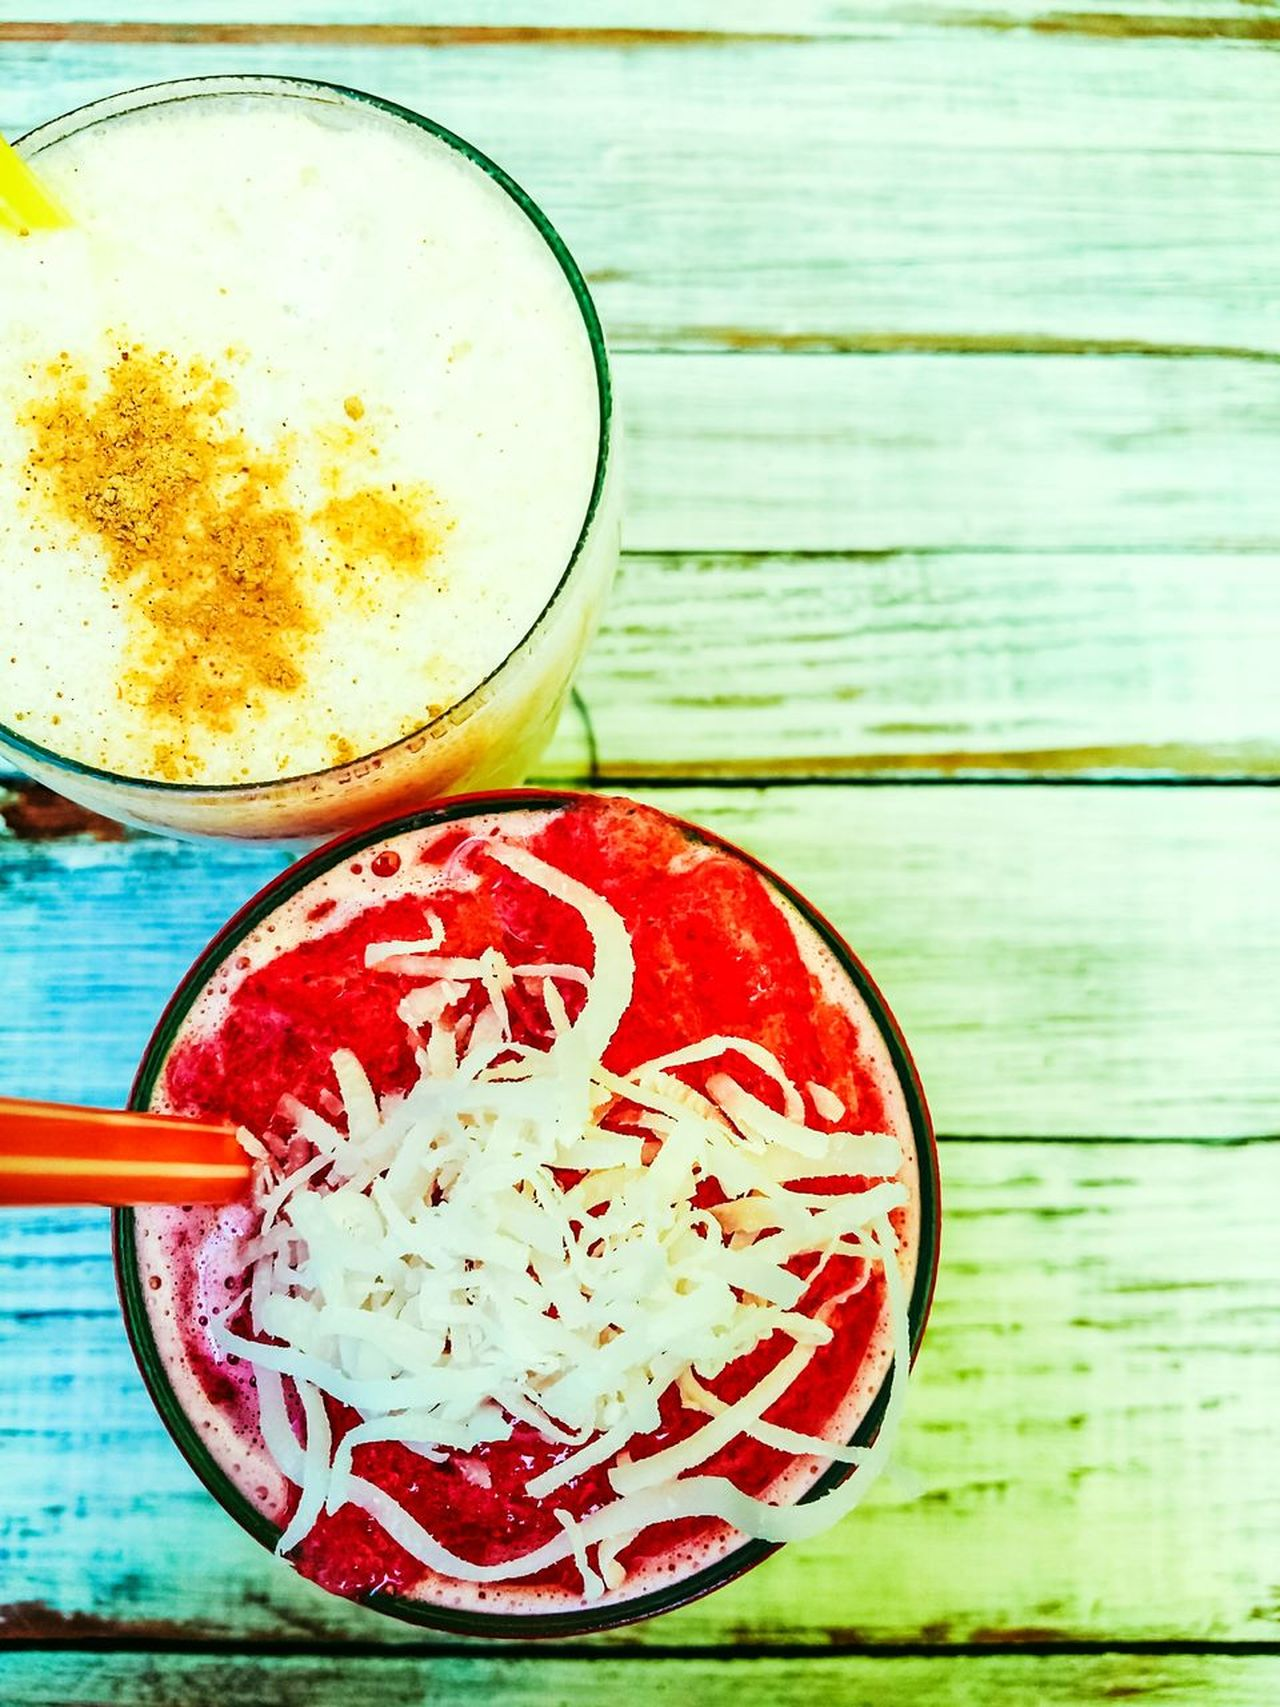 Table Freshness Wood - Material Indoors  Drinking Glass Drink Close-up Coconut Milk Strawberry Fresh Drinks